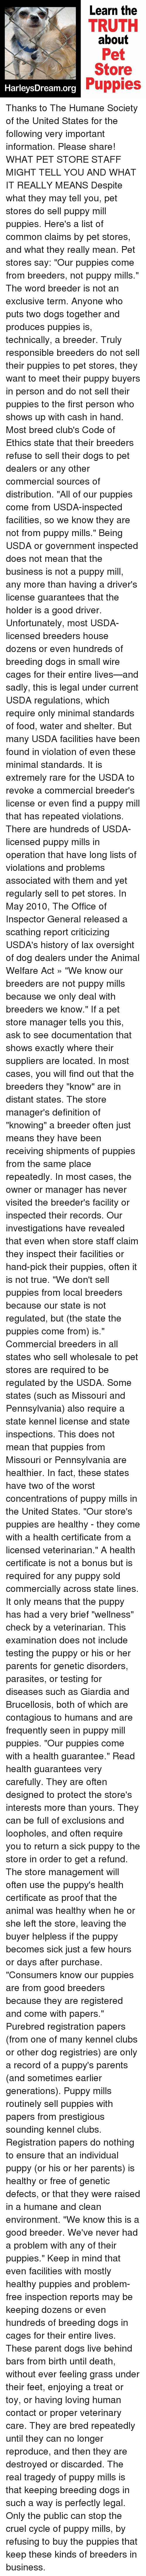 "Dogs, Food, and Memes: Learn the  TRUTH  about  Pet  Store  Puppies  HarleysDream.org Thanks to The Humane Society of the United States for the following very important information. Please share!  WHAT PET STORE STAFF MIGHT TELL YOU AND WHAT IT REALLY MEANS  Despite what they may tell you, pet stores do sell puppy mill puppies. Here's a list of common claims by pet stores, and what they really mean.  Pet stores say: ""Our puppies come from breeders, not puppy mills."" The word breeder is not an exclusive term. Anyone who puts two dogs together and produces puppies is, technically, a breeder.  Truly responsible breeders do not sell their puppies to pet stores, they want to meet their puppy buyers in person and do not sell their puppies to the first person who shows up with cash in hand. Most breed club's Code of Ethics state that their breeders refuse to sell their dogs to pet dealers or any other commercial sources of distribution.  ""All of our puppies come from USDA-inspected facilities, so we know they are not from puppy mills."" Being USDA or government inspected does not mean that the business is not a puppy mill, any more than having a driver's license guarantees that the holder is a good driver. Unfortunately, most USDA-licensed breeders house dozens or even hundreds of breeding dogs in small wire cages for their entire lives—and sadly, this is legal under current USDA regulations, which require only minimal standards of food, water and shelter. But many USDA facilities have been found in violation of even these minimal standards. It is extremely rare for the USDA to revoke a commercial breeder's license or even find a puppy mill that has repeated violations. There are hundreds of USDA-licensed puppy mills in operation that have long lists of violations and problems associated with them and yet regularly sell to pet stores.  In May 2010, The Office of Inspector General released a scathing report criticizing USDA's history of lax oversight of dog dealers under the Animal Welfare Act »  ""We know our breeders are not puppy mills because we only deal with breeders we know."" If a pet store manager tells you this, ask to see documentation that shows exactly where their suppliers are located. In most cases, you will find out that the breeders they ""know"" are in distant states. The store manager's definition of ""knowing"" a breeder often just means they have been receiving shipments of puppies from the same place repeatedly. In most cases, the owner or manager has never visited the breeder's facility or inspected their records. Our investigations have revealed that even when store staff claim they inspect their facilities or hand-pick their puppies, often it is not true.  ""We don't sell puppies from local breeders because our state is not regulated, but (the state the puppies come from) is."" Commercial breeders in all states who sell wholesale to pet stores are required to be regulated by the USDA. Some states (such as Missouri and Pennsylvania) also require a state kennel license and state inspections. This does not mean that puppies from Missouri or Pennsylvania are healthier. In fact, these states have two of the worst concentrations of puppy mills in the United States.  ""Our store's puppies are healthy - they come with a health certificate from a licensed veterinarian."" A health certificate is not a bonus but is required for any puppy sold commercially across state lines. It only means that the puppy has had a very brief ""wellness"" check by a veterinarian. This examination does not include testing the puppy or his or her parents for genetic disorders, parasites, or testing for diseases such as Giardia and Brucellosis, both of which are contagious to humans and are frequently seen in puppy mill puppies.  ""Our puppies come with a health guarantee."" Read health guarantees very carefully. They are often designed to protect the store's interests more than yours. They can be full of exclusions and loopholes, and often require you to return a sick puppy to the store in order to get a refund. The store management will often use the puppy's health certificate as proof that the animal was healthy when he or she left the store, leaving the buyer helpless if the puppy becomes sick just a few hours or days after purchase.  ""Consumers know our puppies are from good breeders because they are registered and come with papers."" Purebred registration papers (from one of many kennel clubs or other dog registries) are only a record of a puppy's parents (and sometimes earlier generations). Puppy mills routinely sell puppies with papers from prestigious sounding kennel clubs. Registration papers do nothing to ensure that an individual puppy (or his or her parents) is healthy or free of genetic defects, or that they were raised in a humane and clean environment.  ""We know this is a good breeder. We've never had a problem with any of their puppies."" Keep in mind that even facilities with mostly healthy puppies and problem-free inspection reports may be keeping dozens or even hundreds of breeding dogs in cages for their entire lives. These parent dogs live behind bars from birth until death, without ever feeling grass under their feet, enjoying a treat or toy, or having loving human contact or proper veterinary care. They are bred repeatedly until they can no longer reproduce, and then they are destroyed or discarded.  The real tragedy of puppy mills is that keeping breeding dogs in such a way is perfectly legal. Only the public can stop the cruel cycle of puppy mills, by refusing to buy the puppies that keep these kinds of breeders in business."